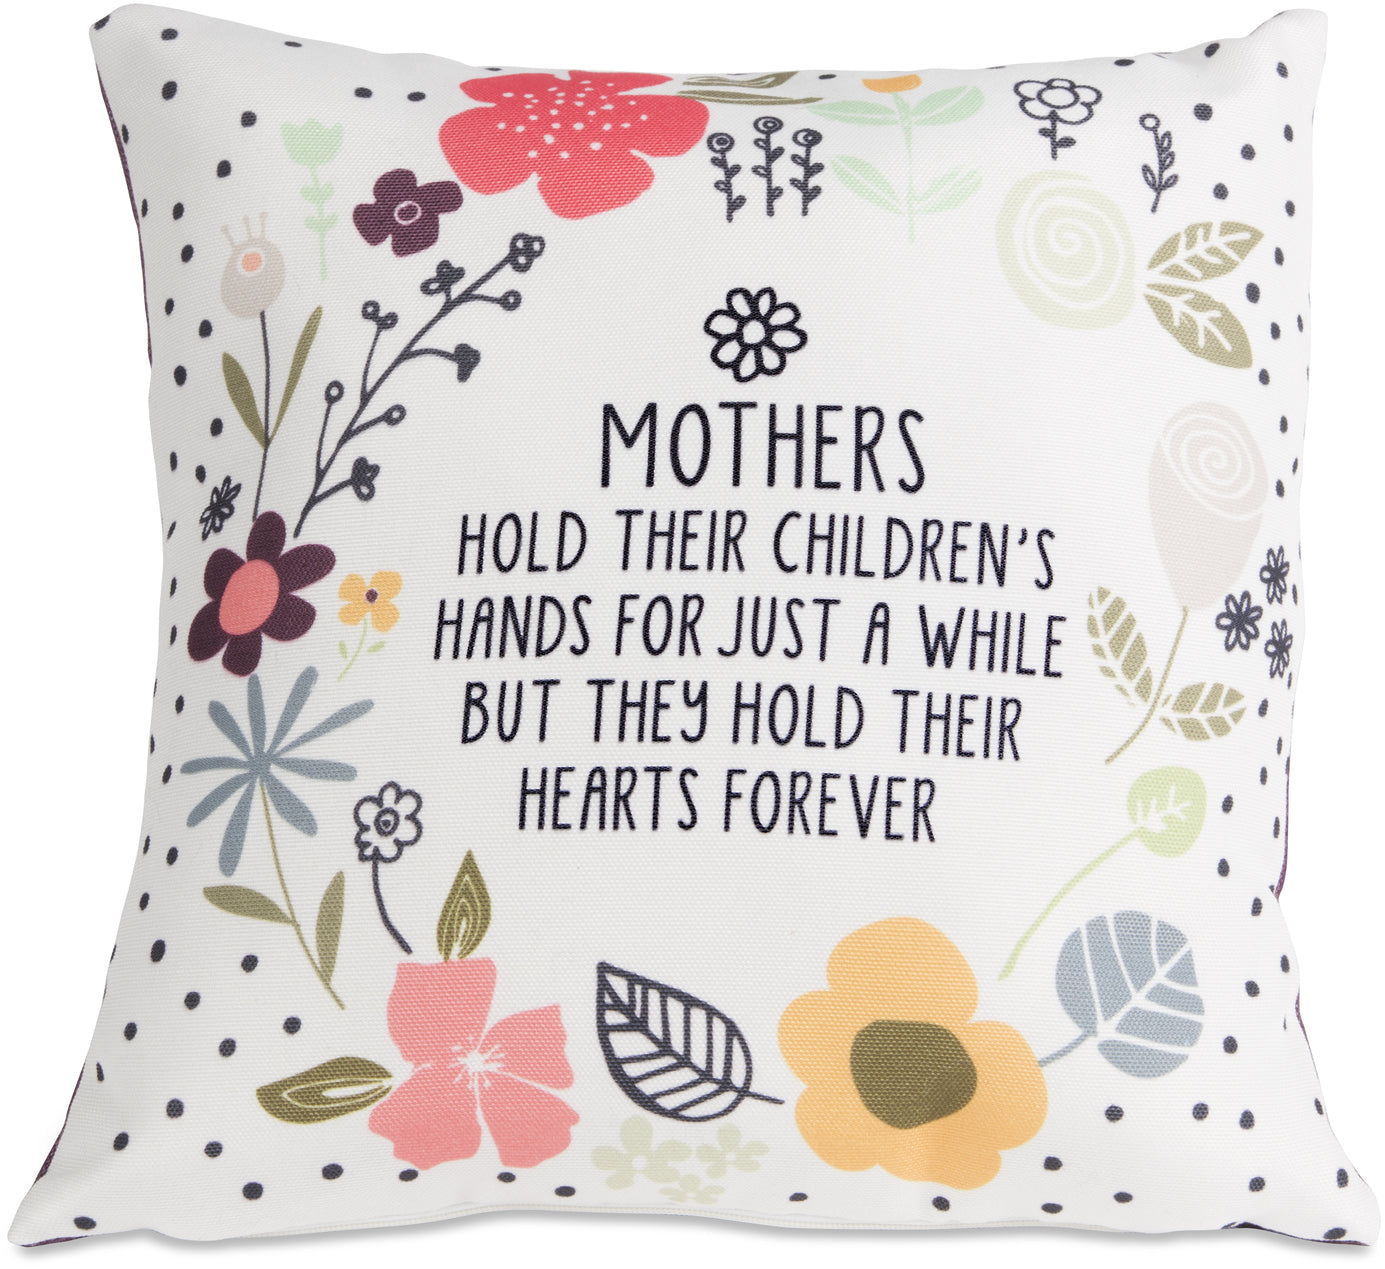 "Mothers - 12"" x 12"" Micromink Pillow"